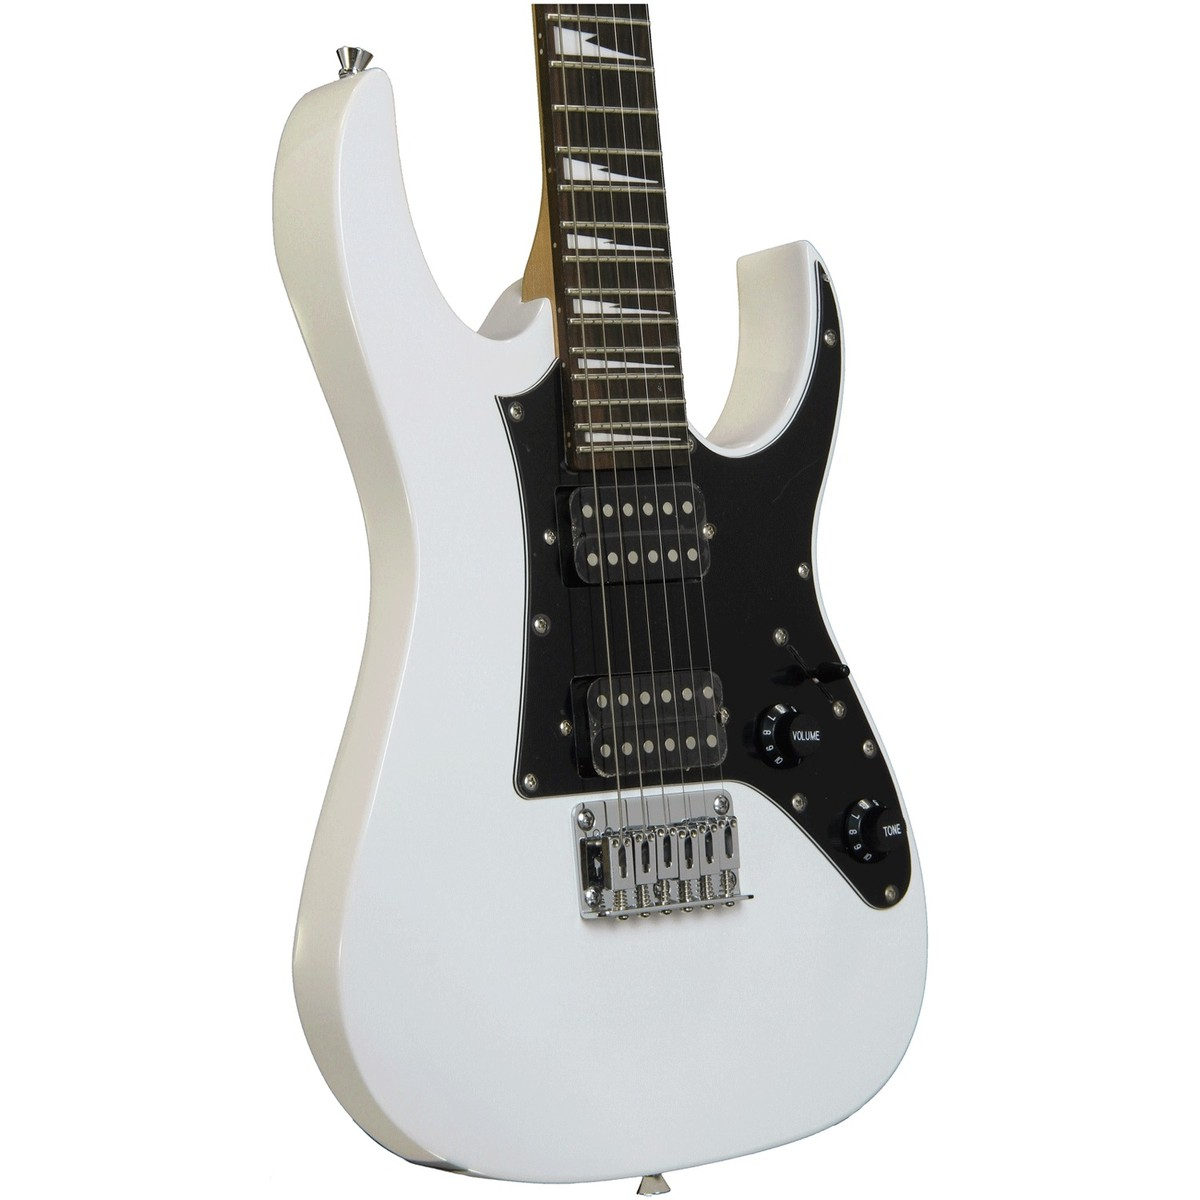 ibanez gio grgm21 mikro electric guitar white box opened at gear4music. Black Bedroom Furniture Sets. Home Design Ideas